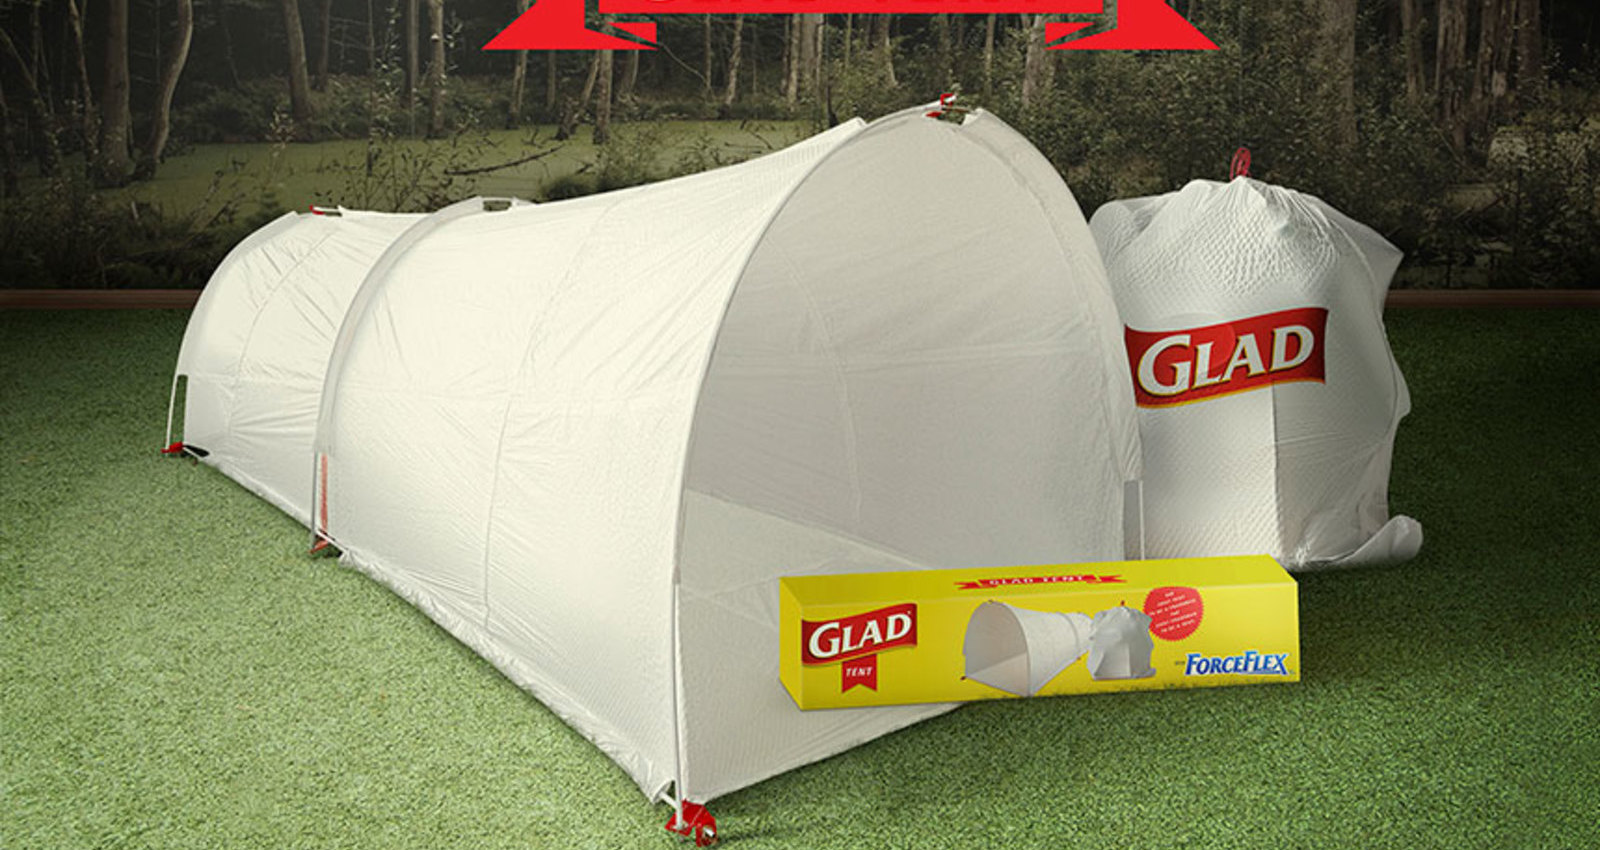 The Glad Tent